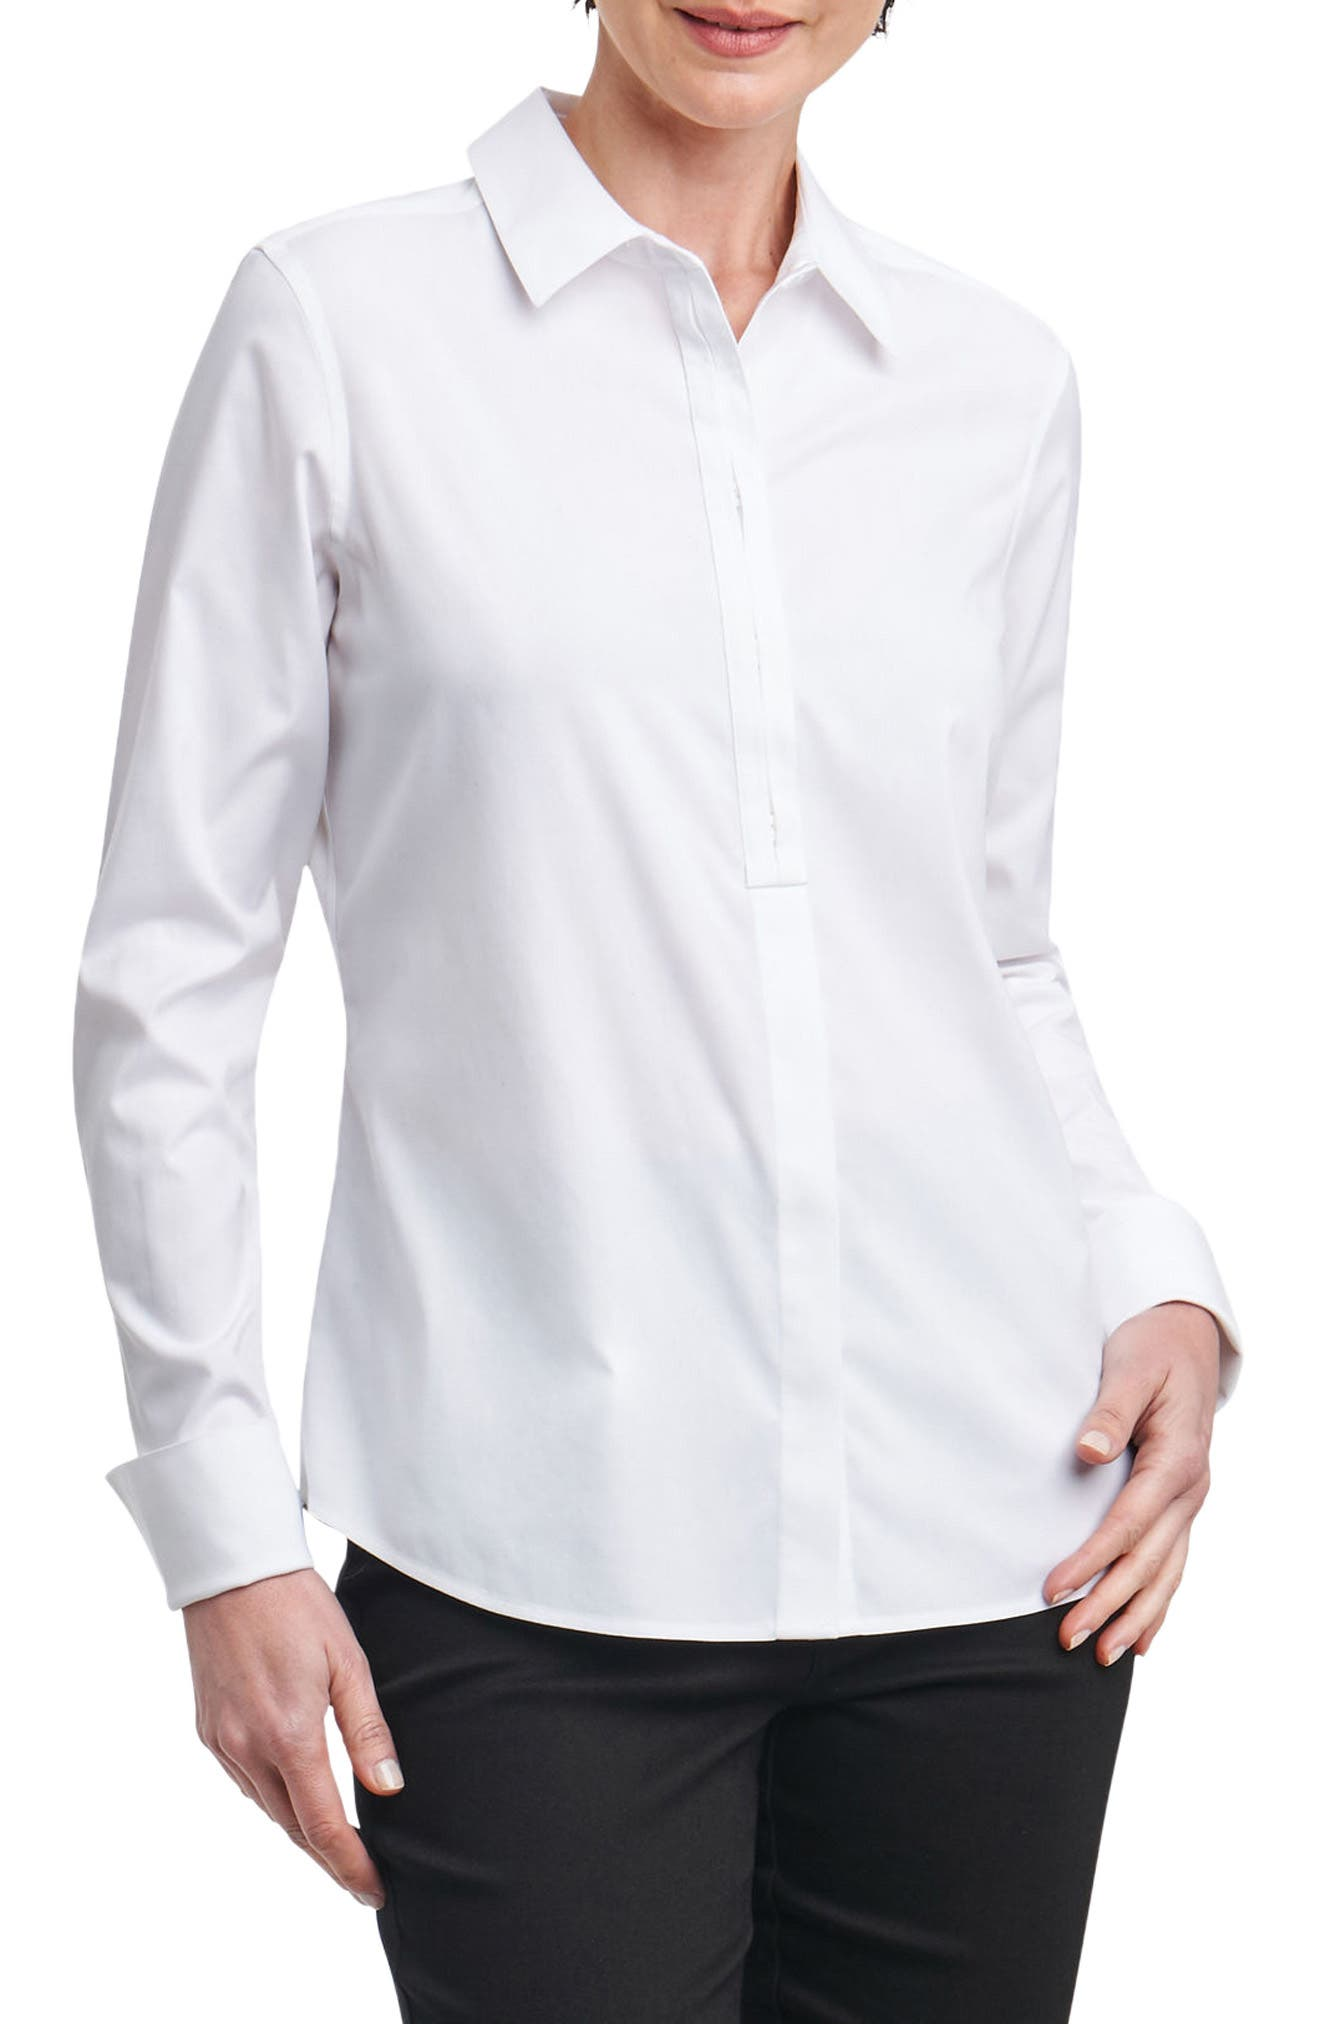 Foxcroft Elise Non-Iron Stretch Cotton Shirt